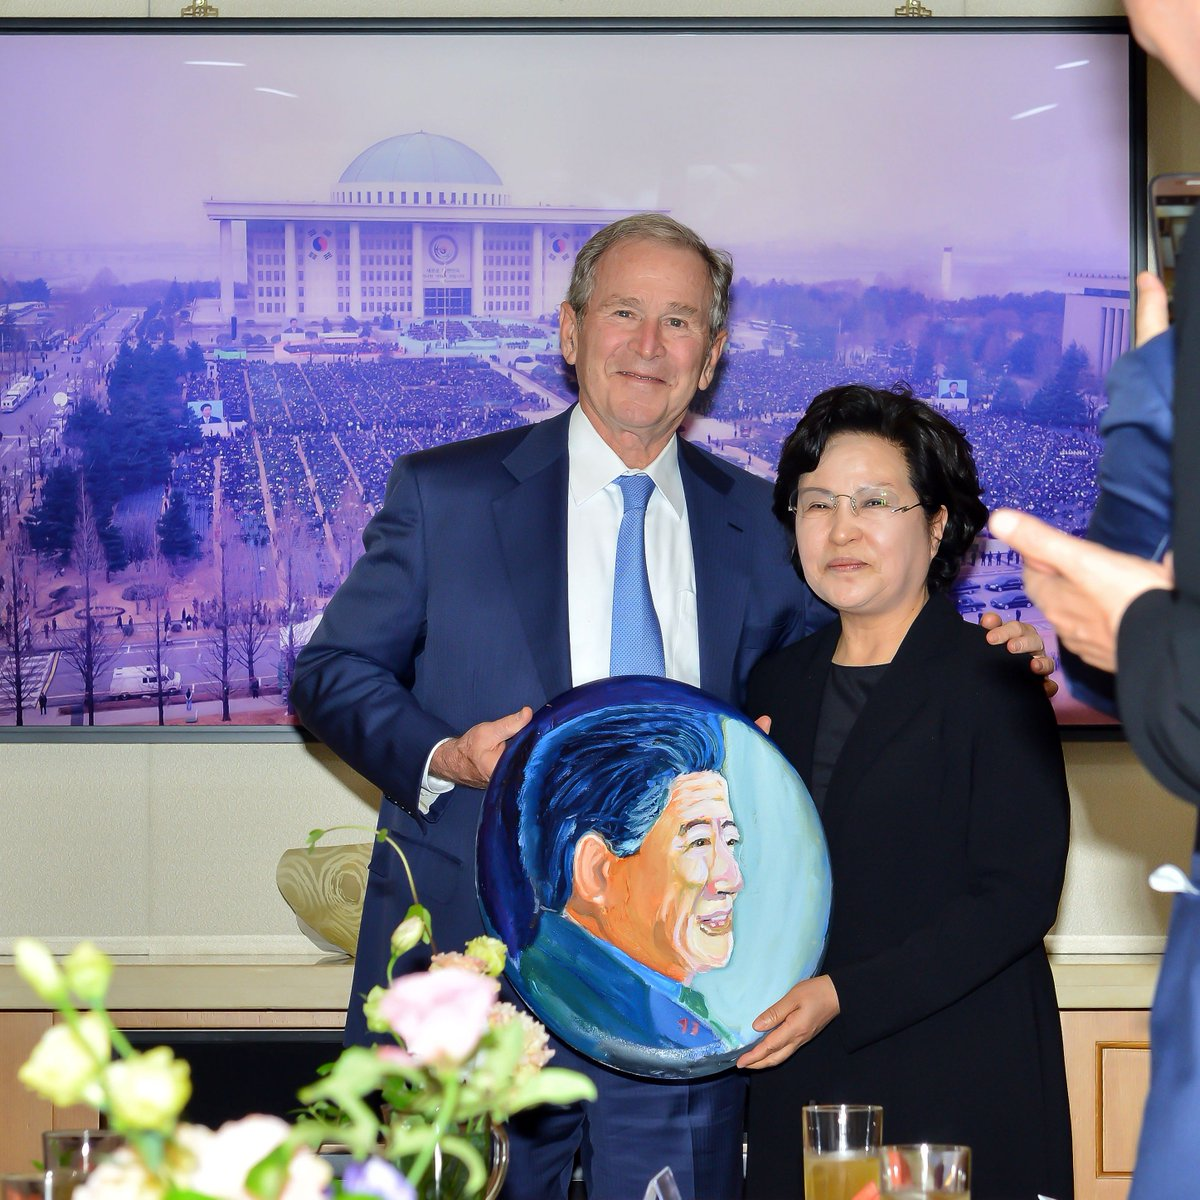 A deeply moving moment! Former President George W. Bush presented a portrait he painted of former President Roh Moo-hyun to first First Lady Kwon Yang-sook at the 10th anniversary of former President Roh's passing.